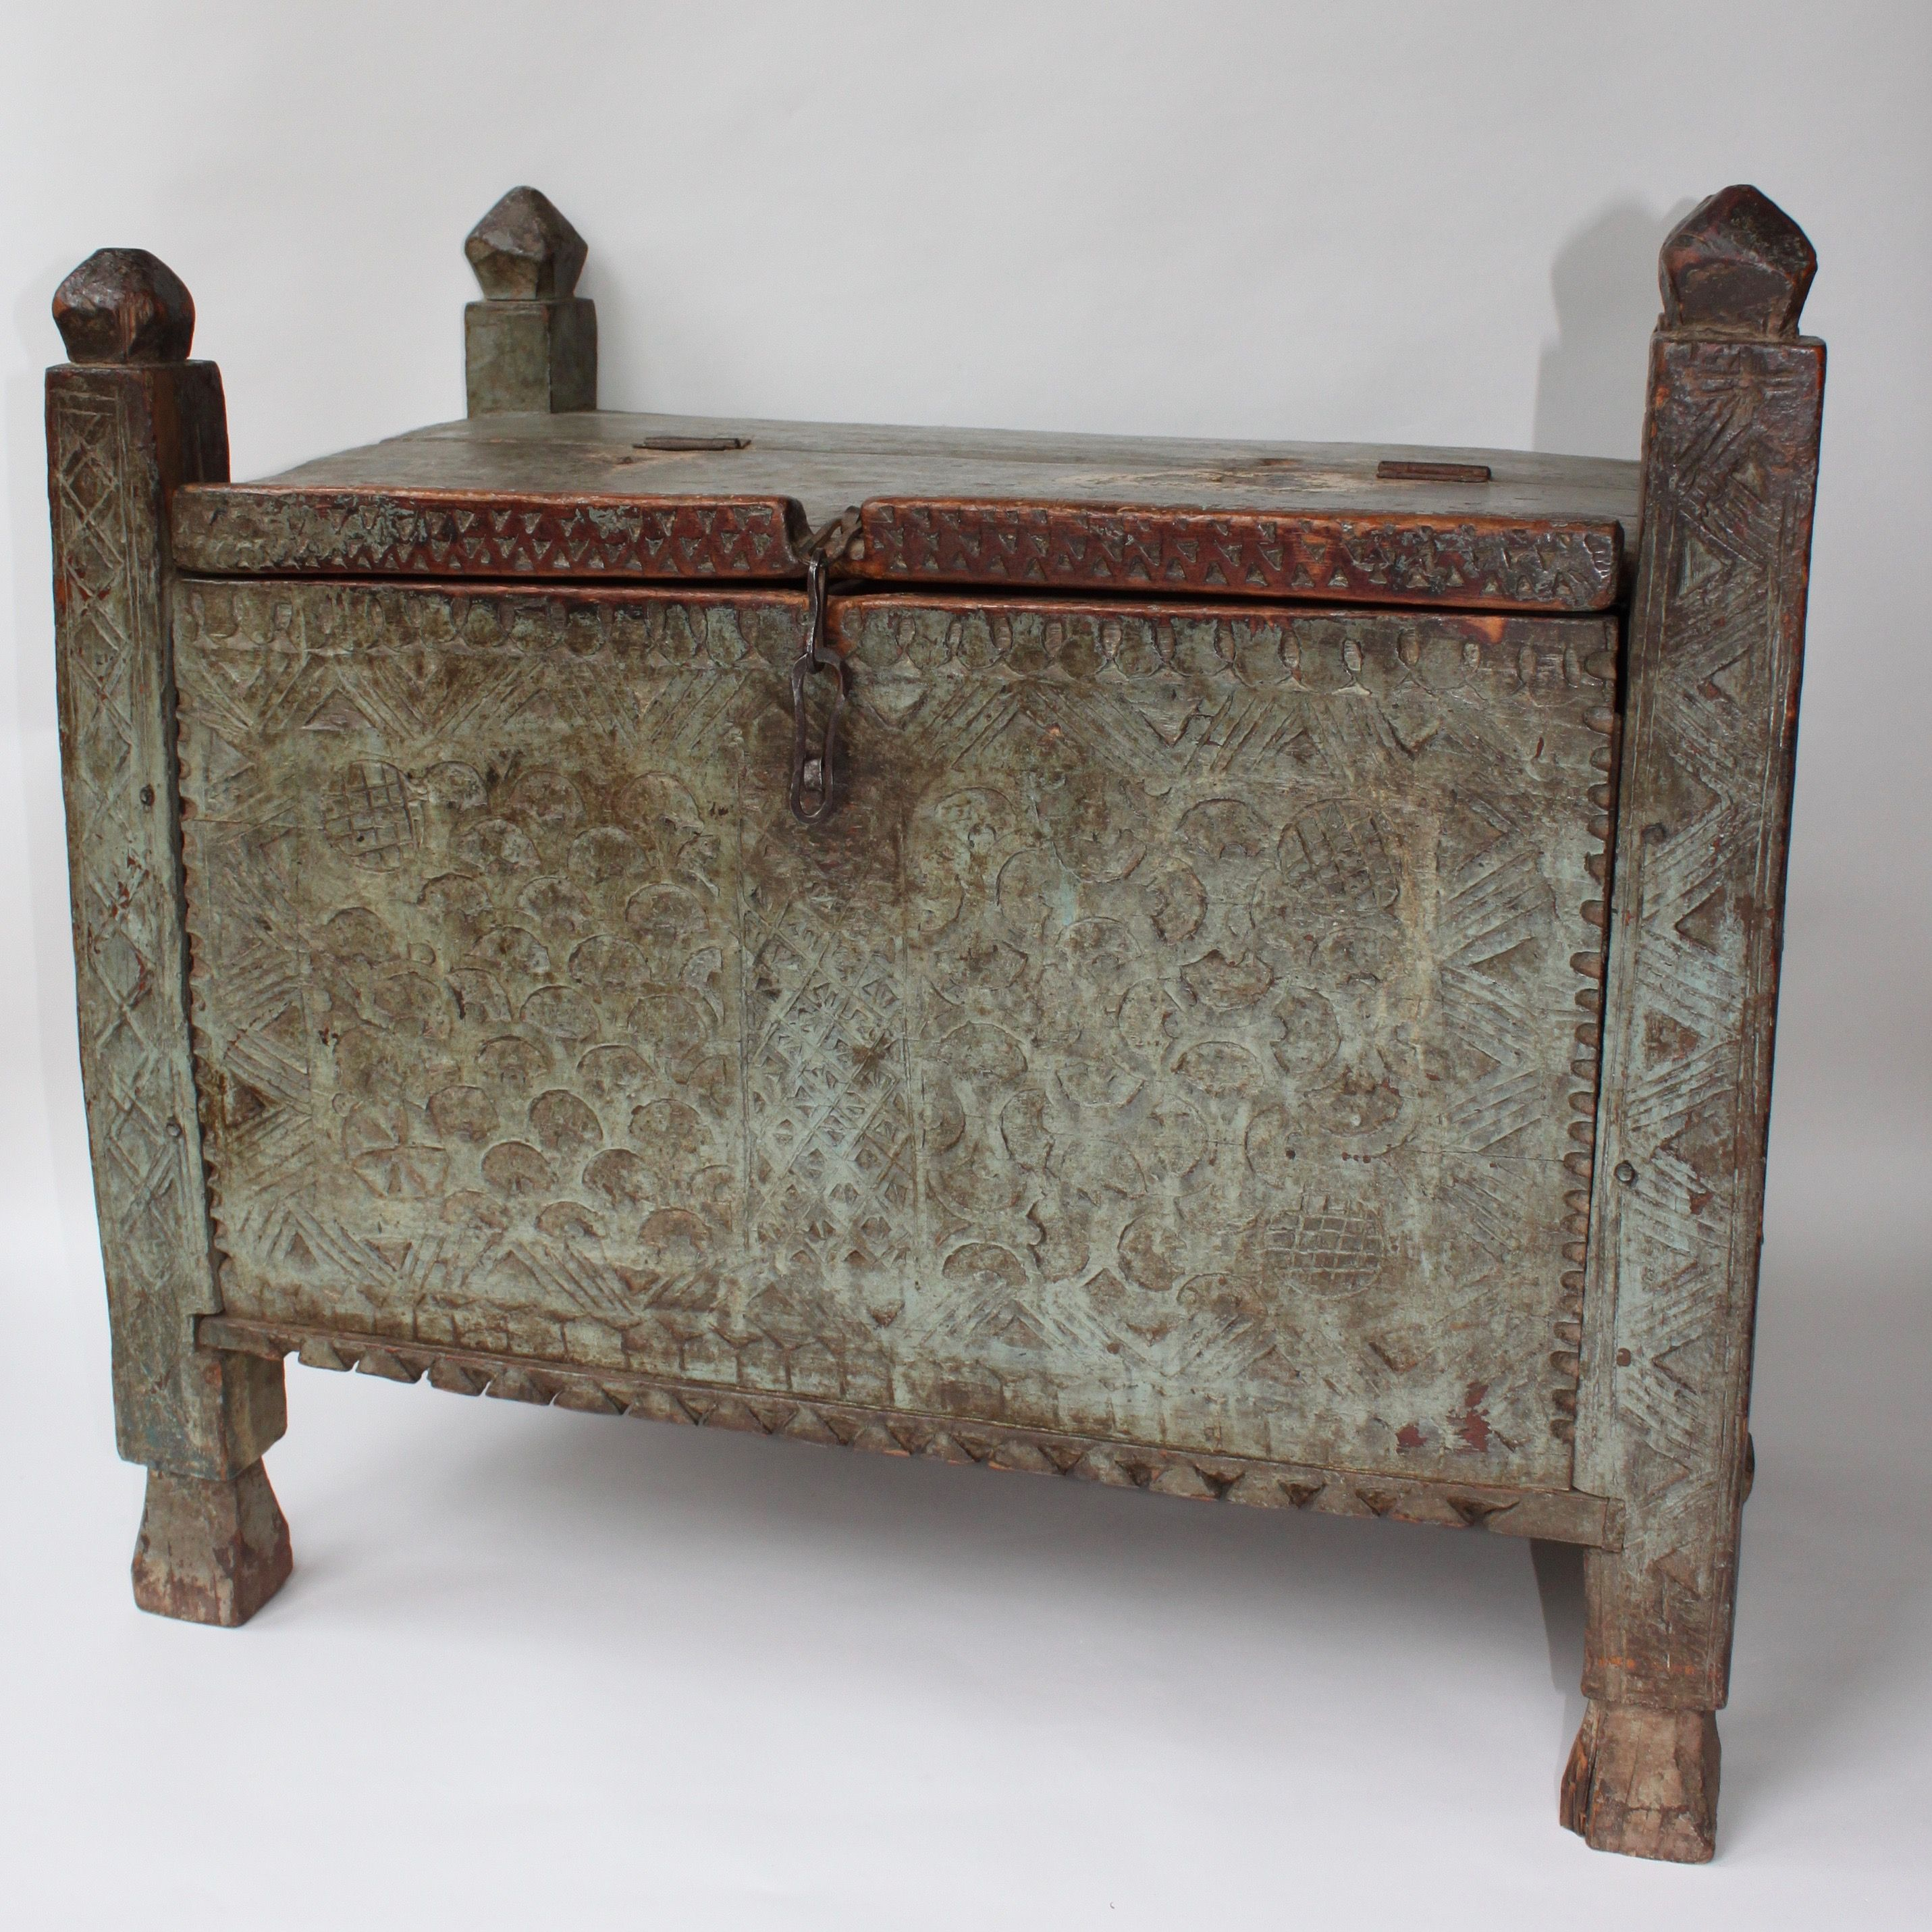 Antique Indian Dowry Chest Stunning C18th. Available on christiannouyou.com